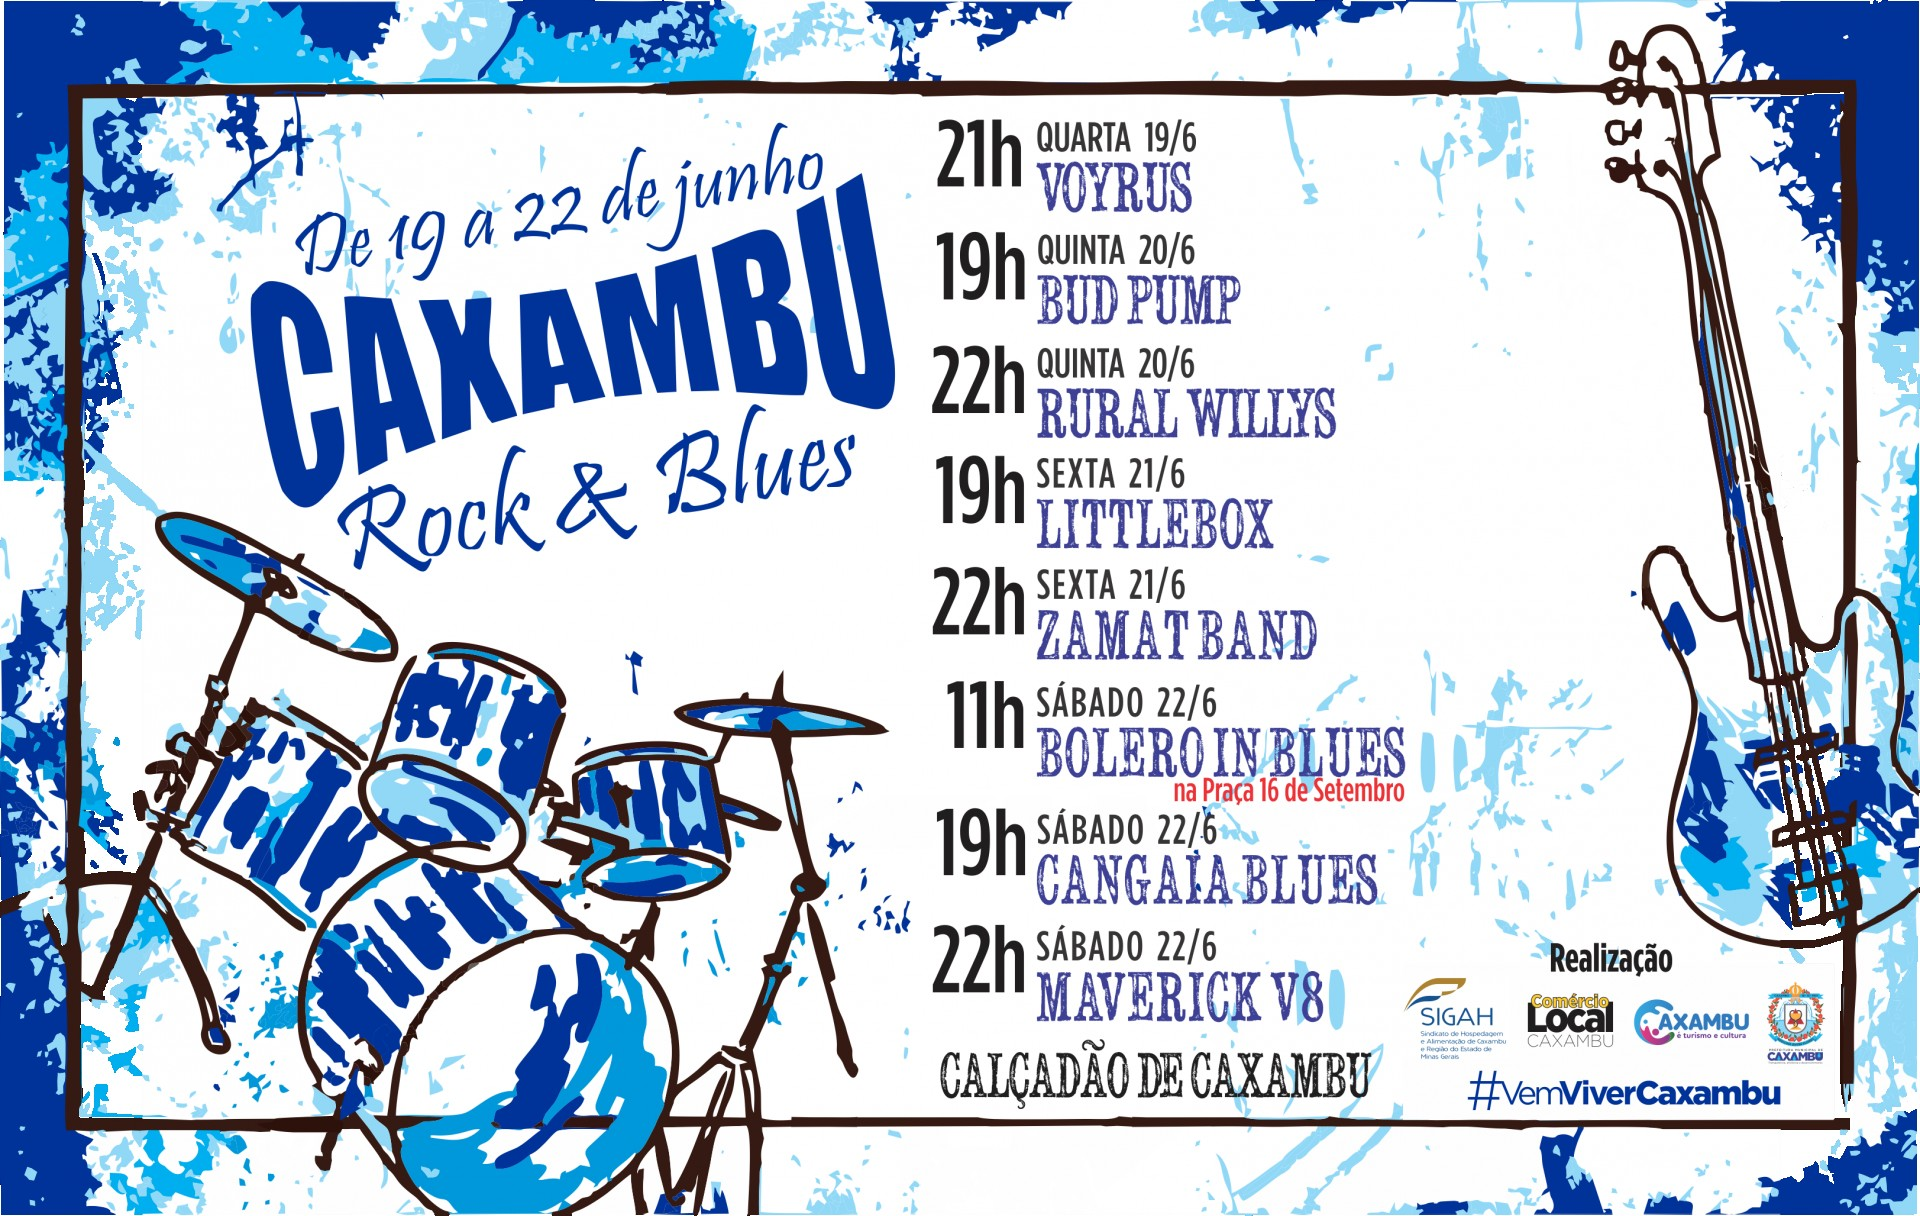 CAXAMBU ROCK & BLUES